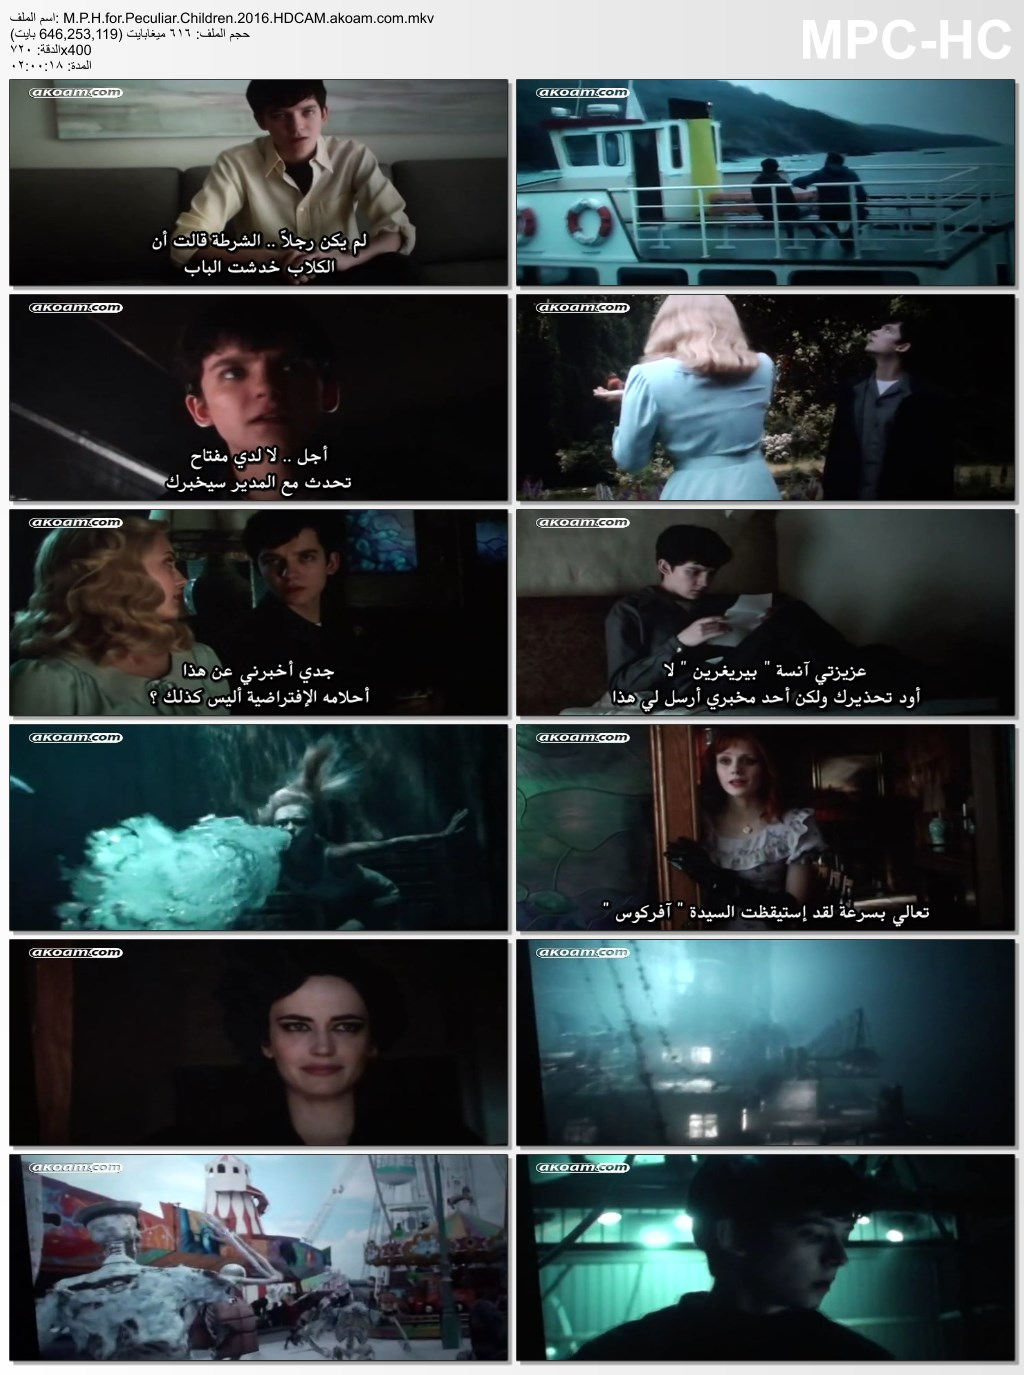 Miss Peregrine's Home for Peculiar Children,المغامرات,الدراما,الفانتازيا,العائلي,Miss Peregrines Home for Peculiar Children